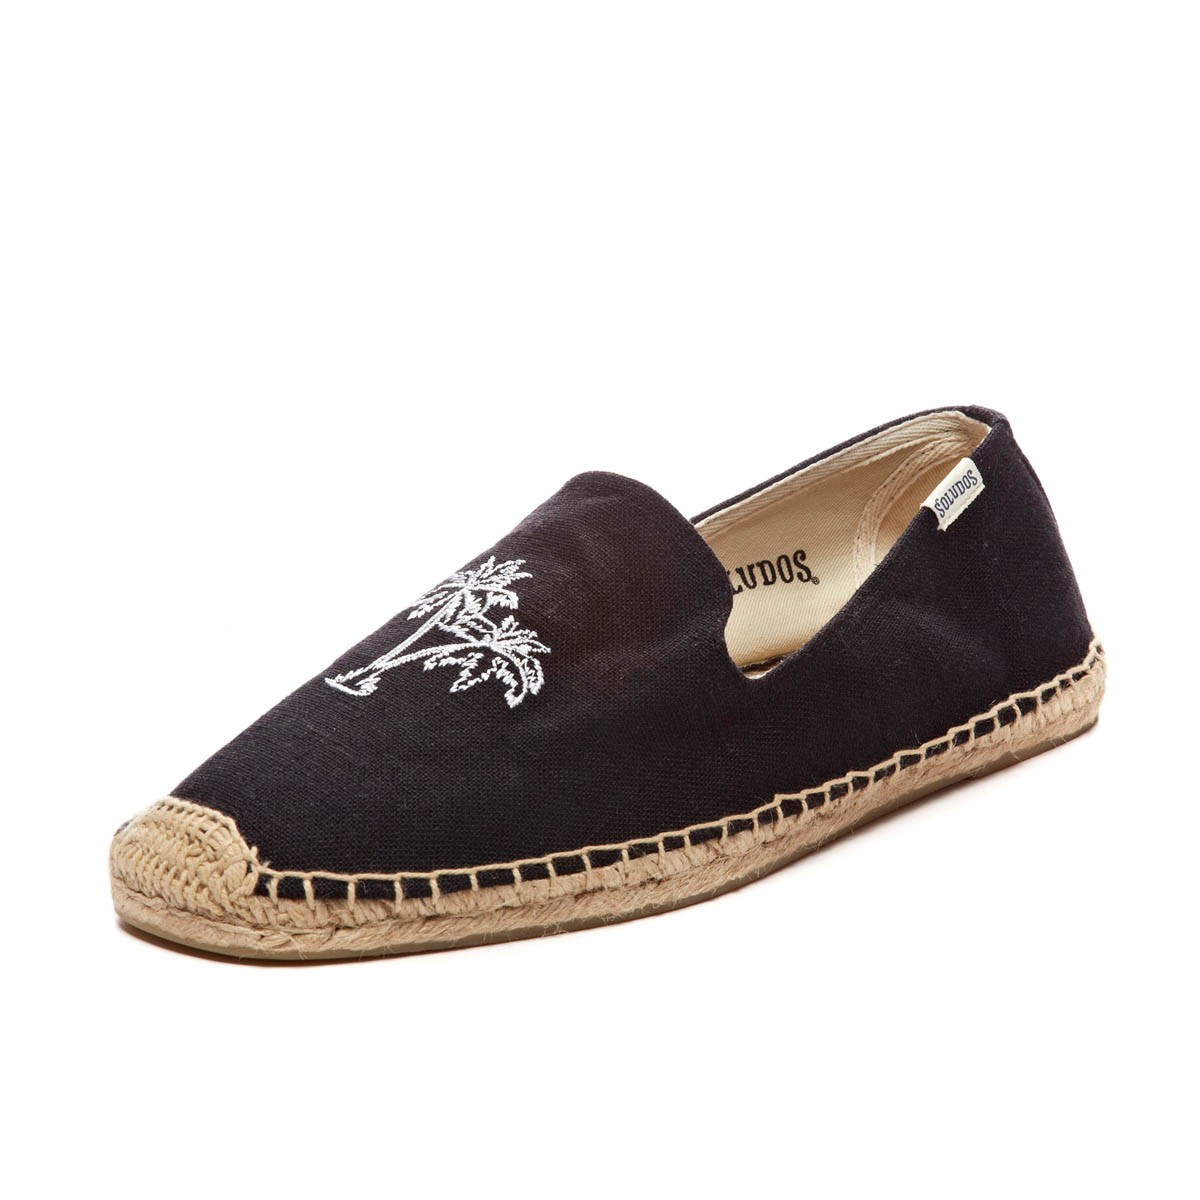 Leather Platform Smoking Slipper. Tradition, meet today. The classic espadrille gets taken up a few notches with a